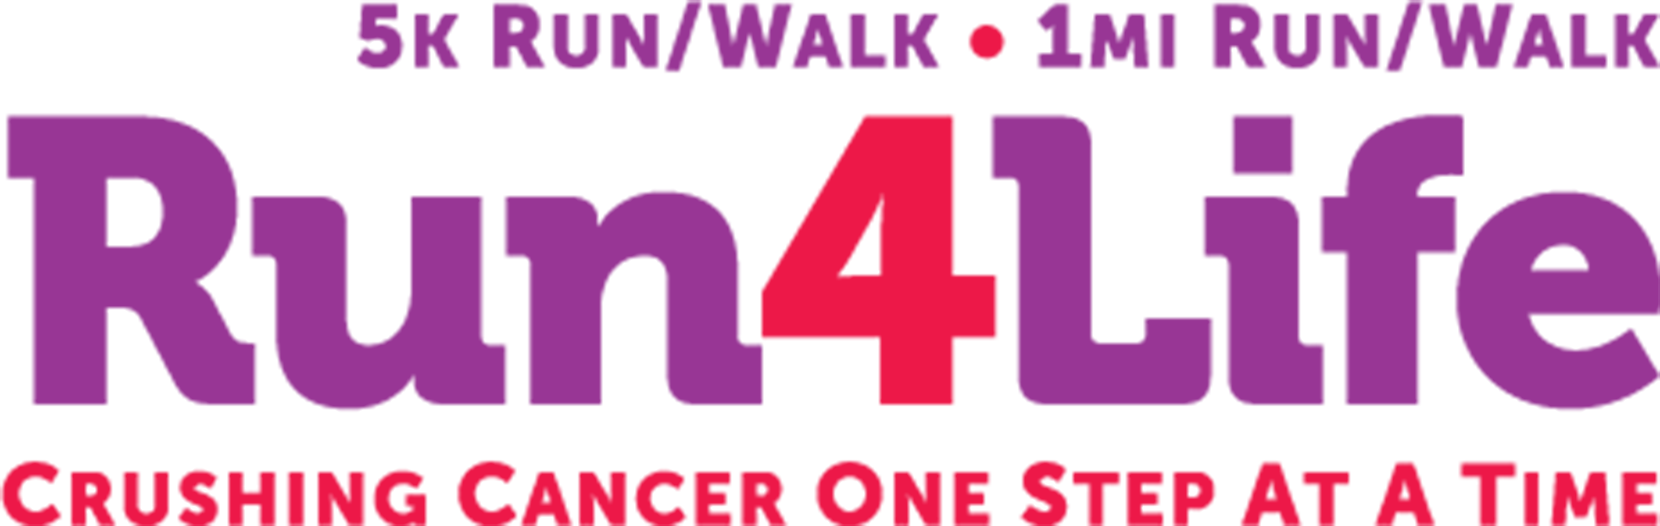 run4life-2019-logo.png